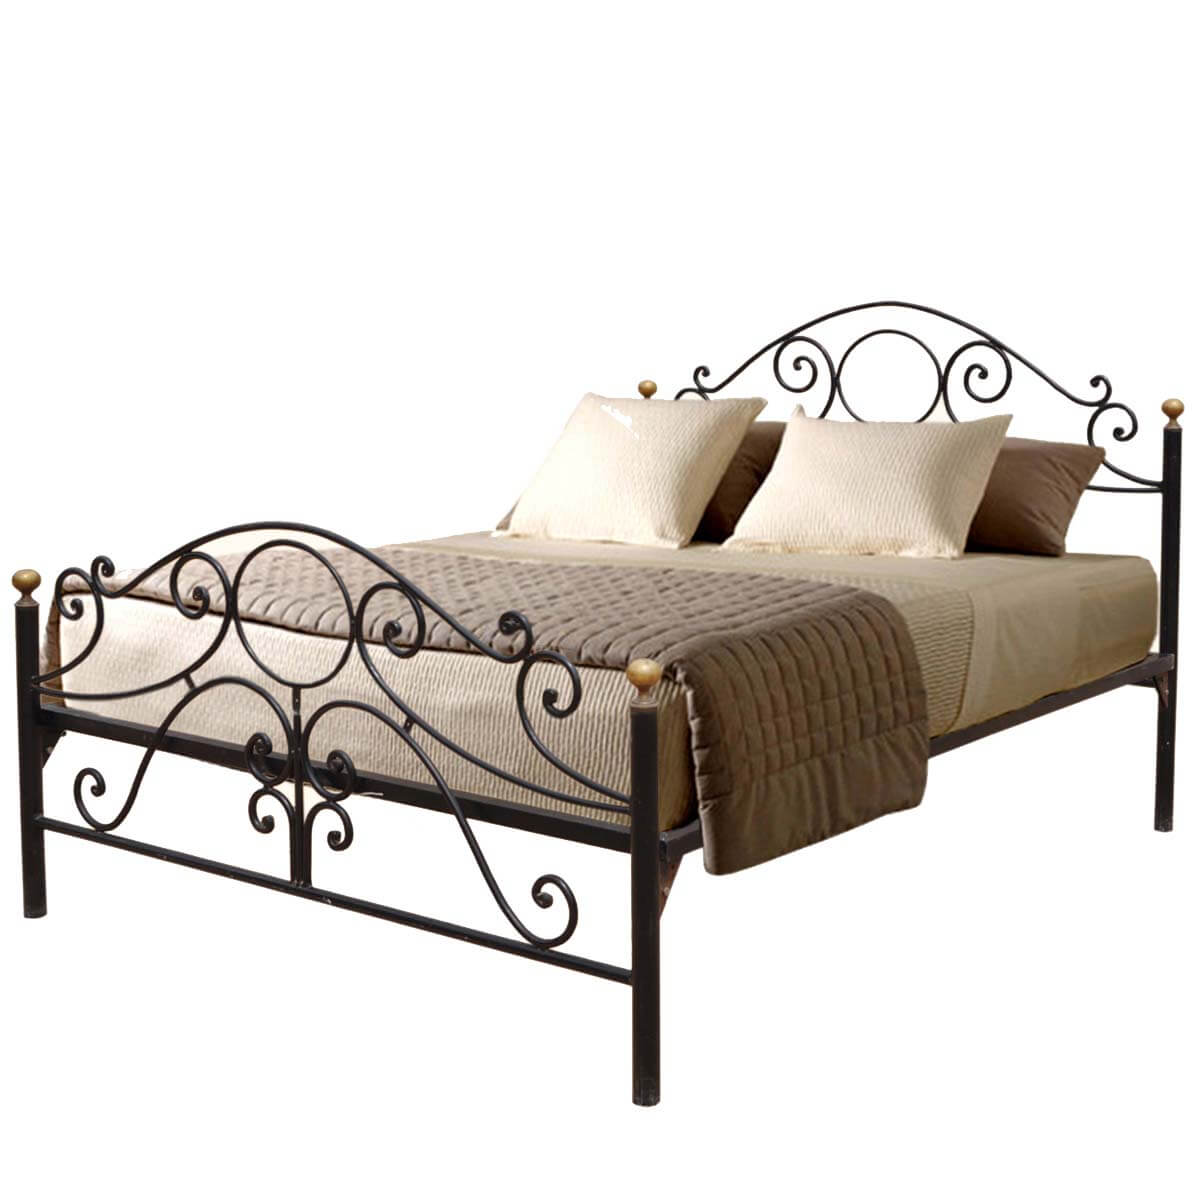 Parisian Black Wrought Iron Decorative Bed W Headboard